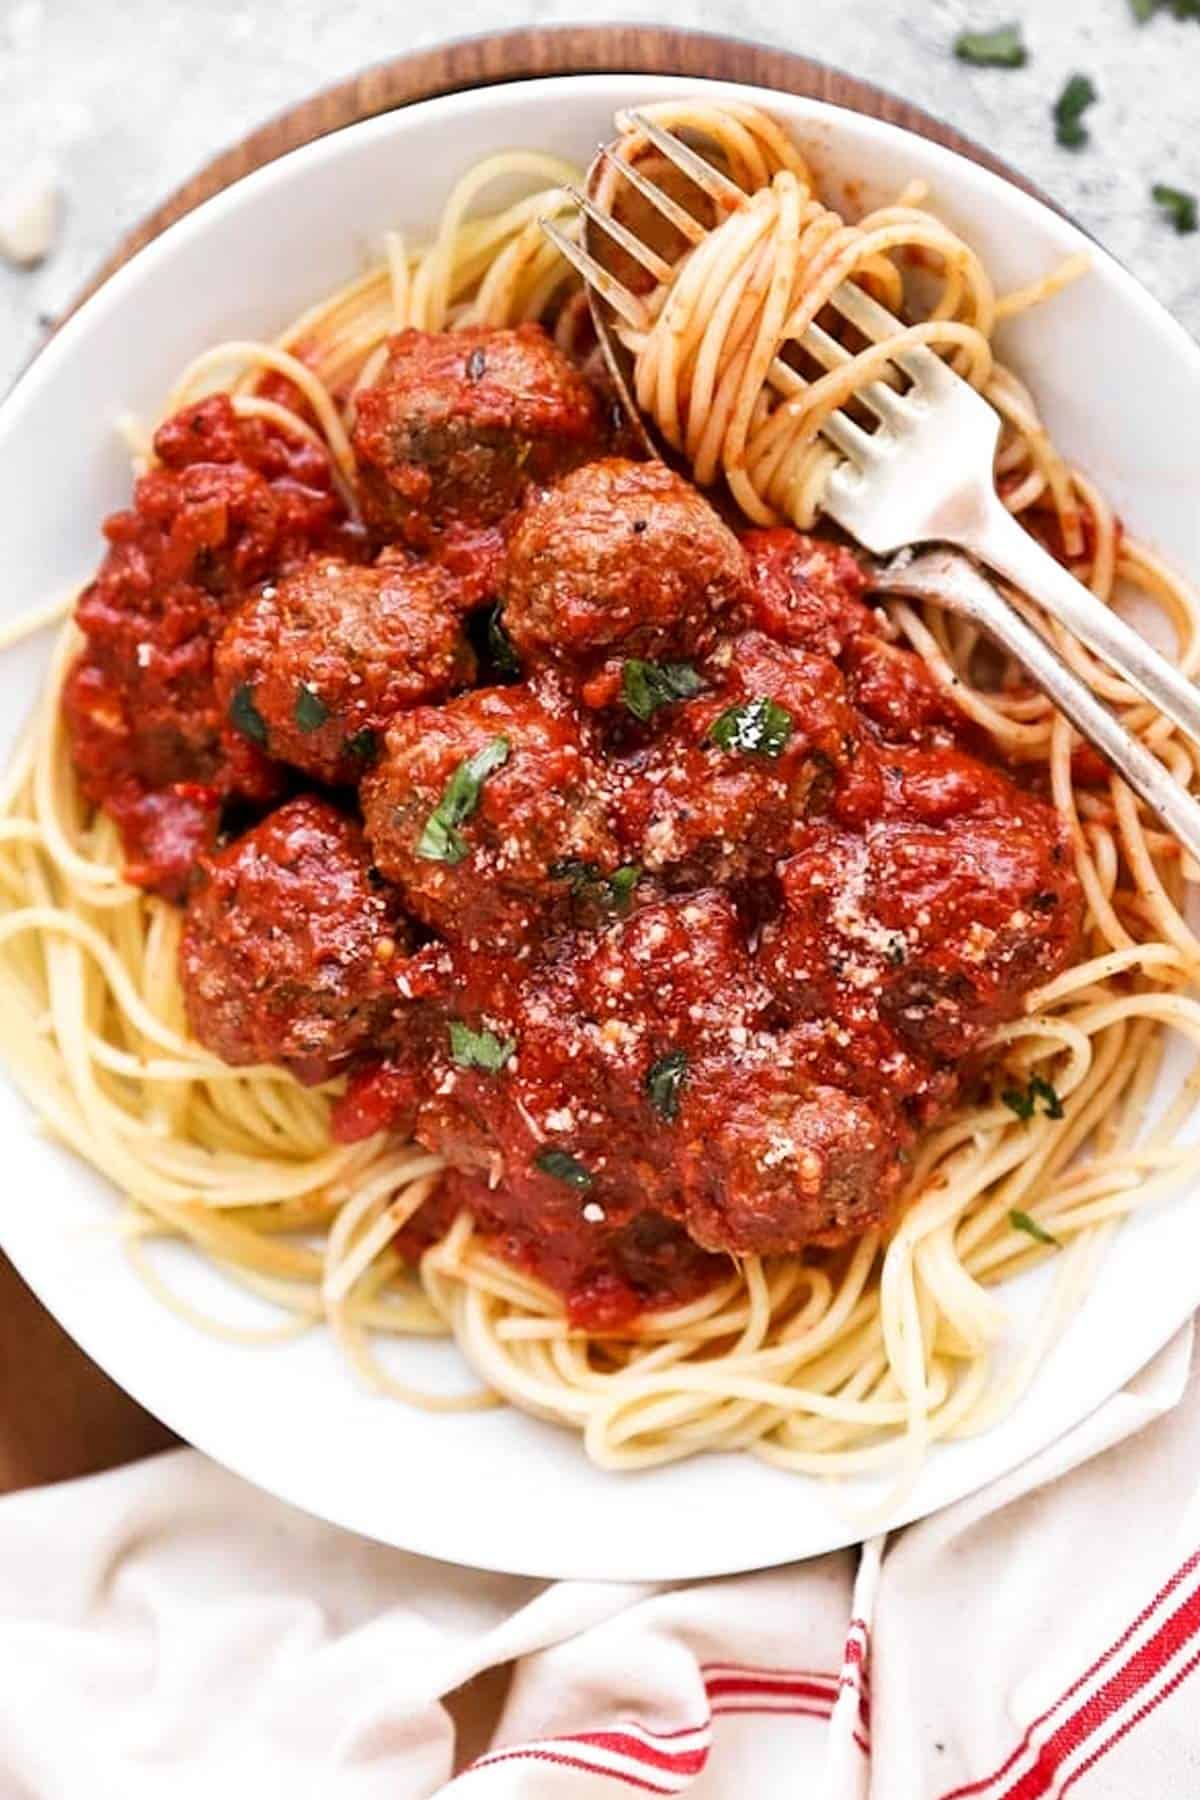 close up of plate with spaghetti and meatballs